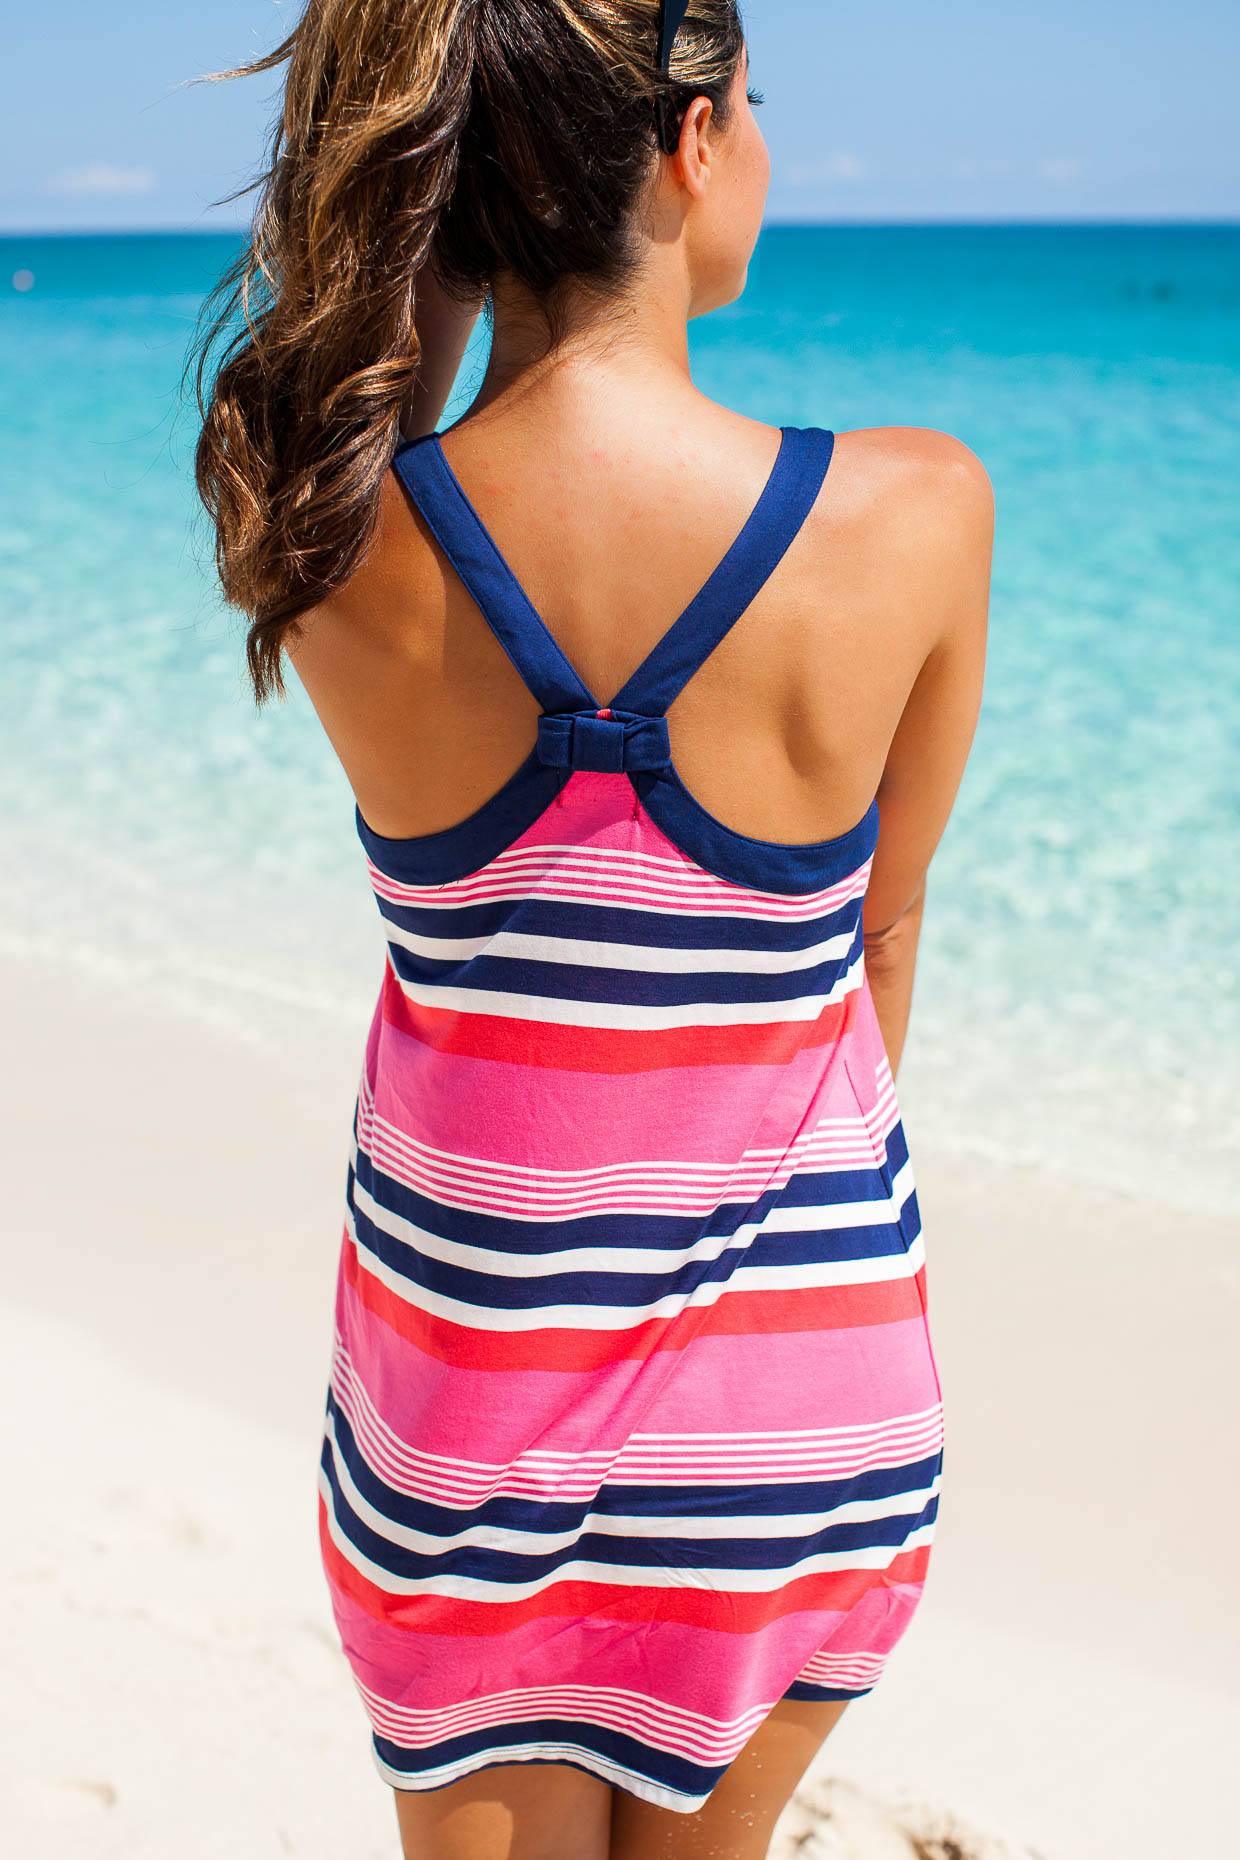 The Darling Detail is wearing the Kate Spade Multi Stripe Chemise on Paradise Island, Nassau.